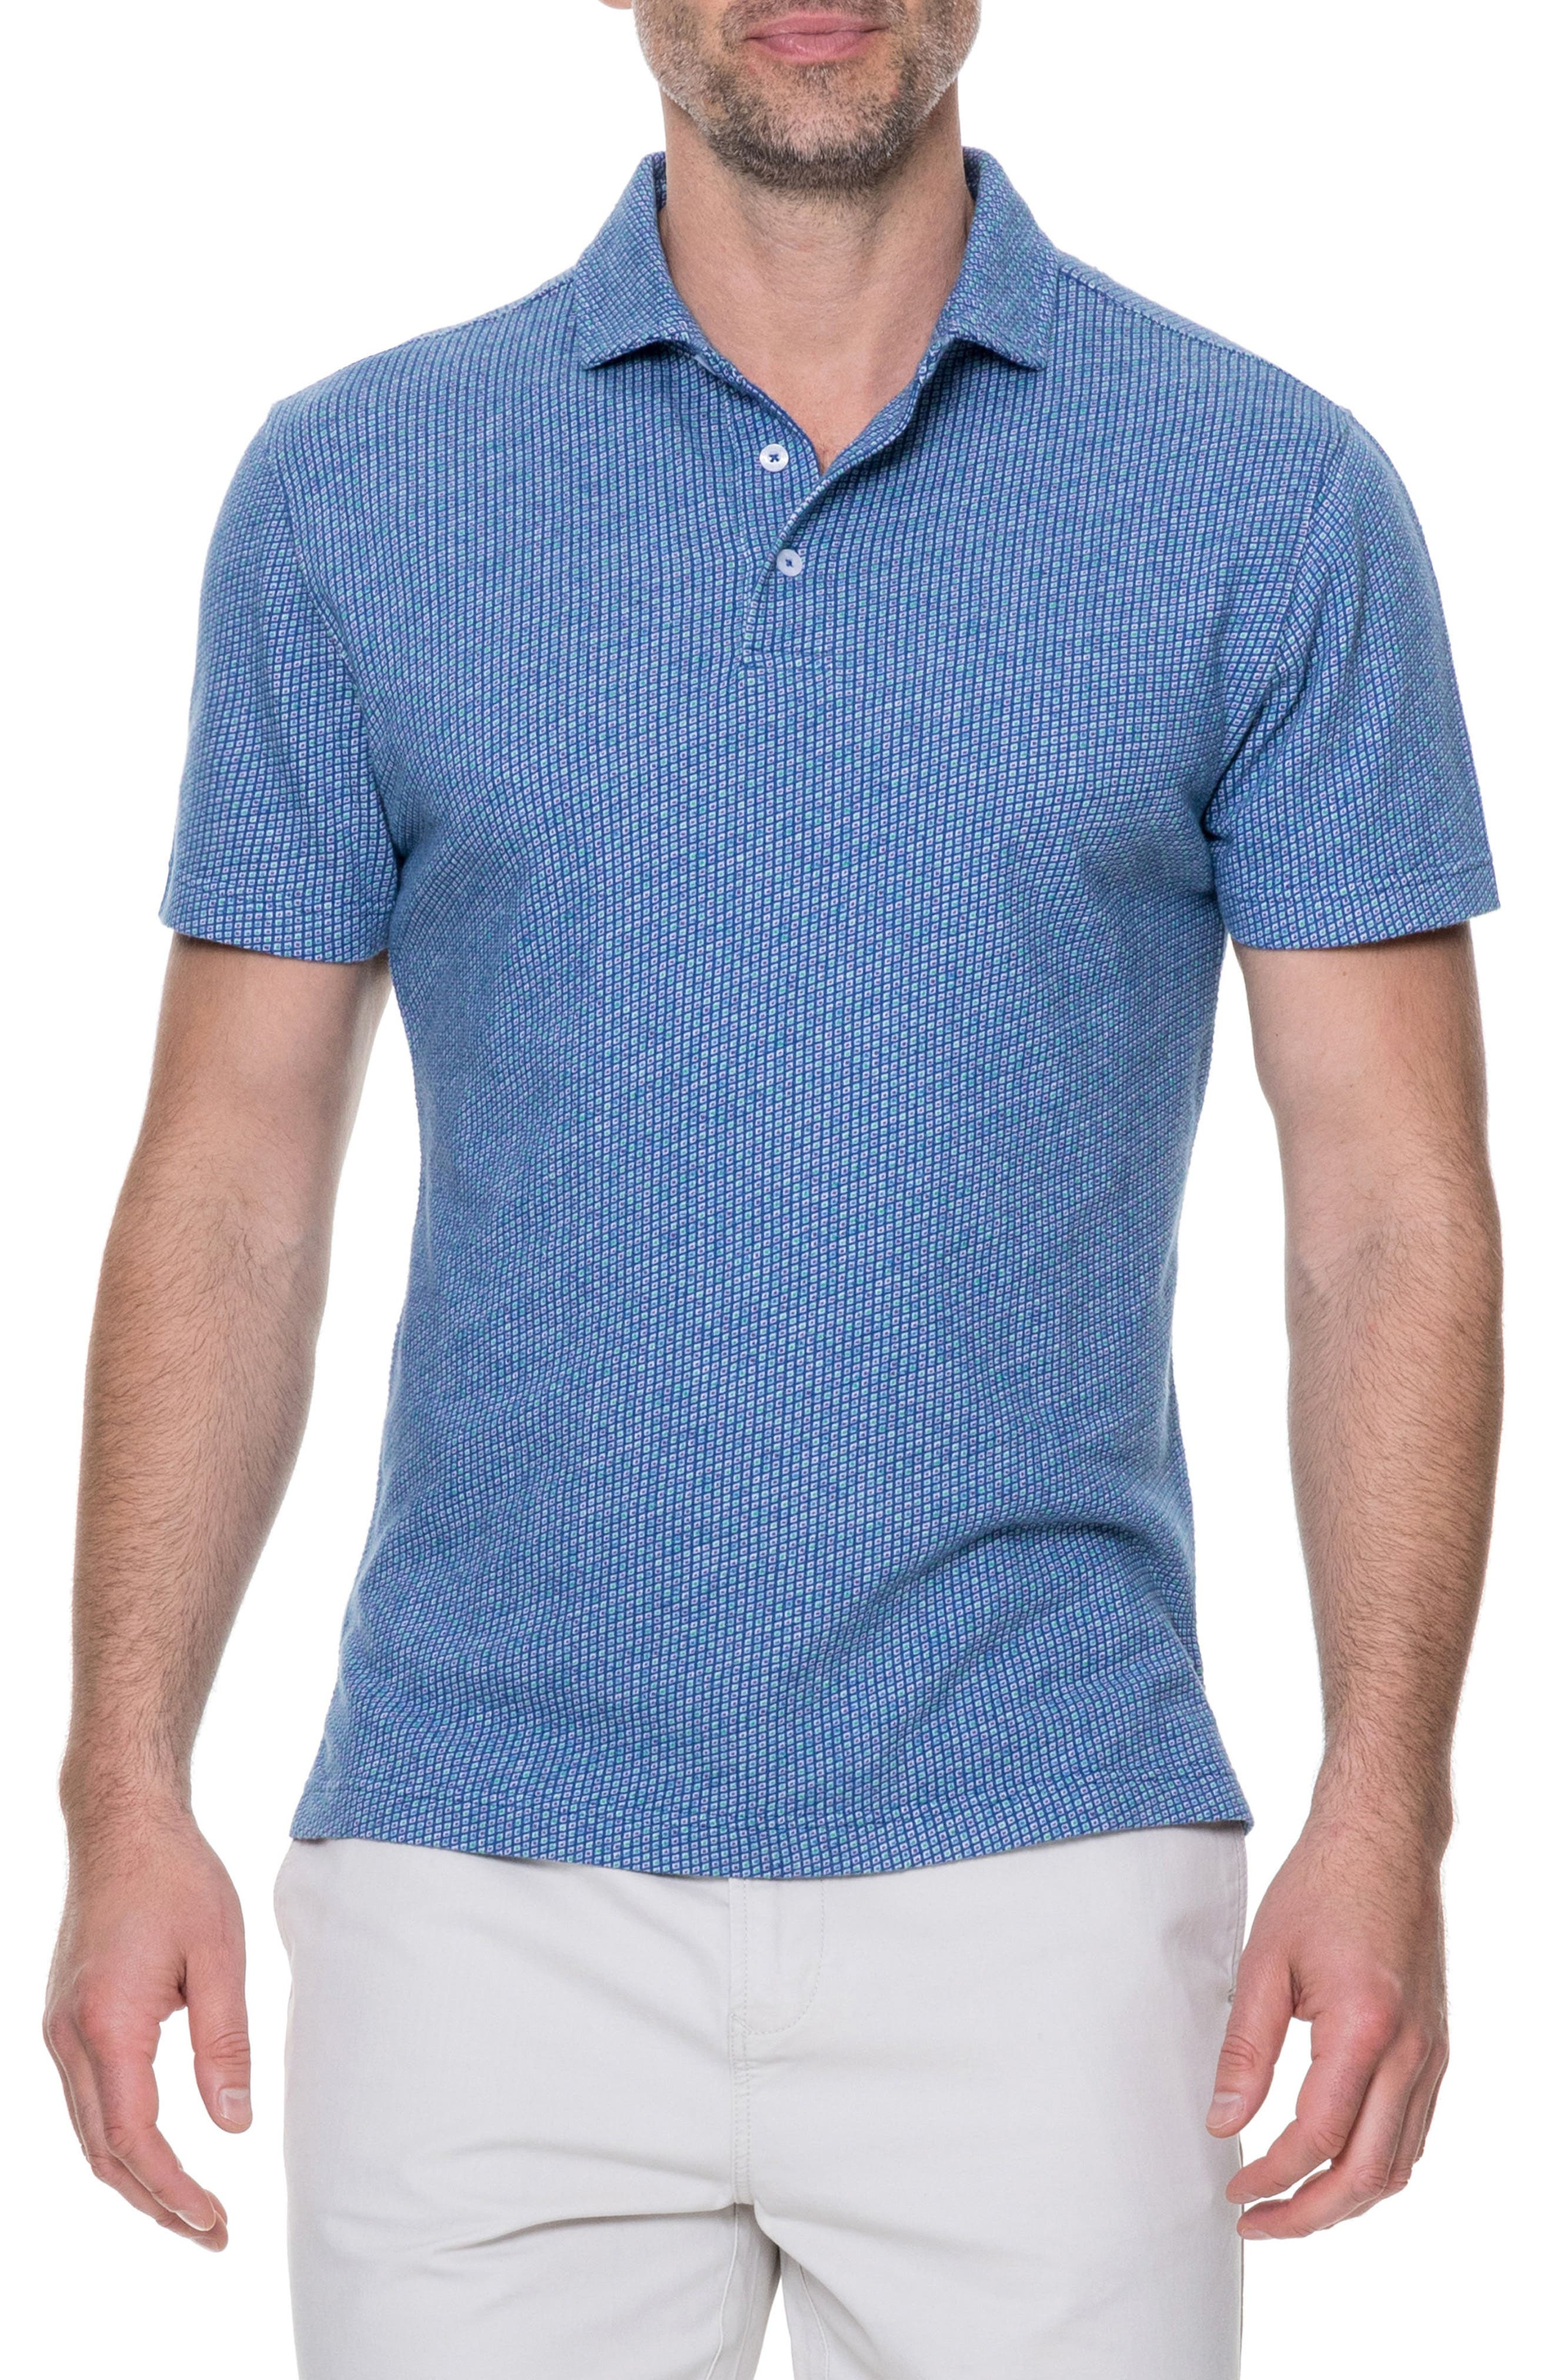 Thoms Bay Sports Fit Polo,                             Main thumbnail 1, color,                             423